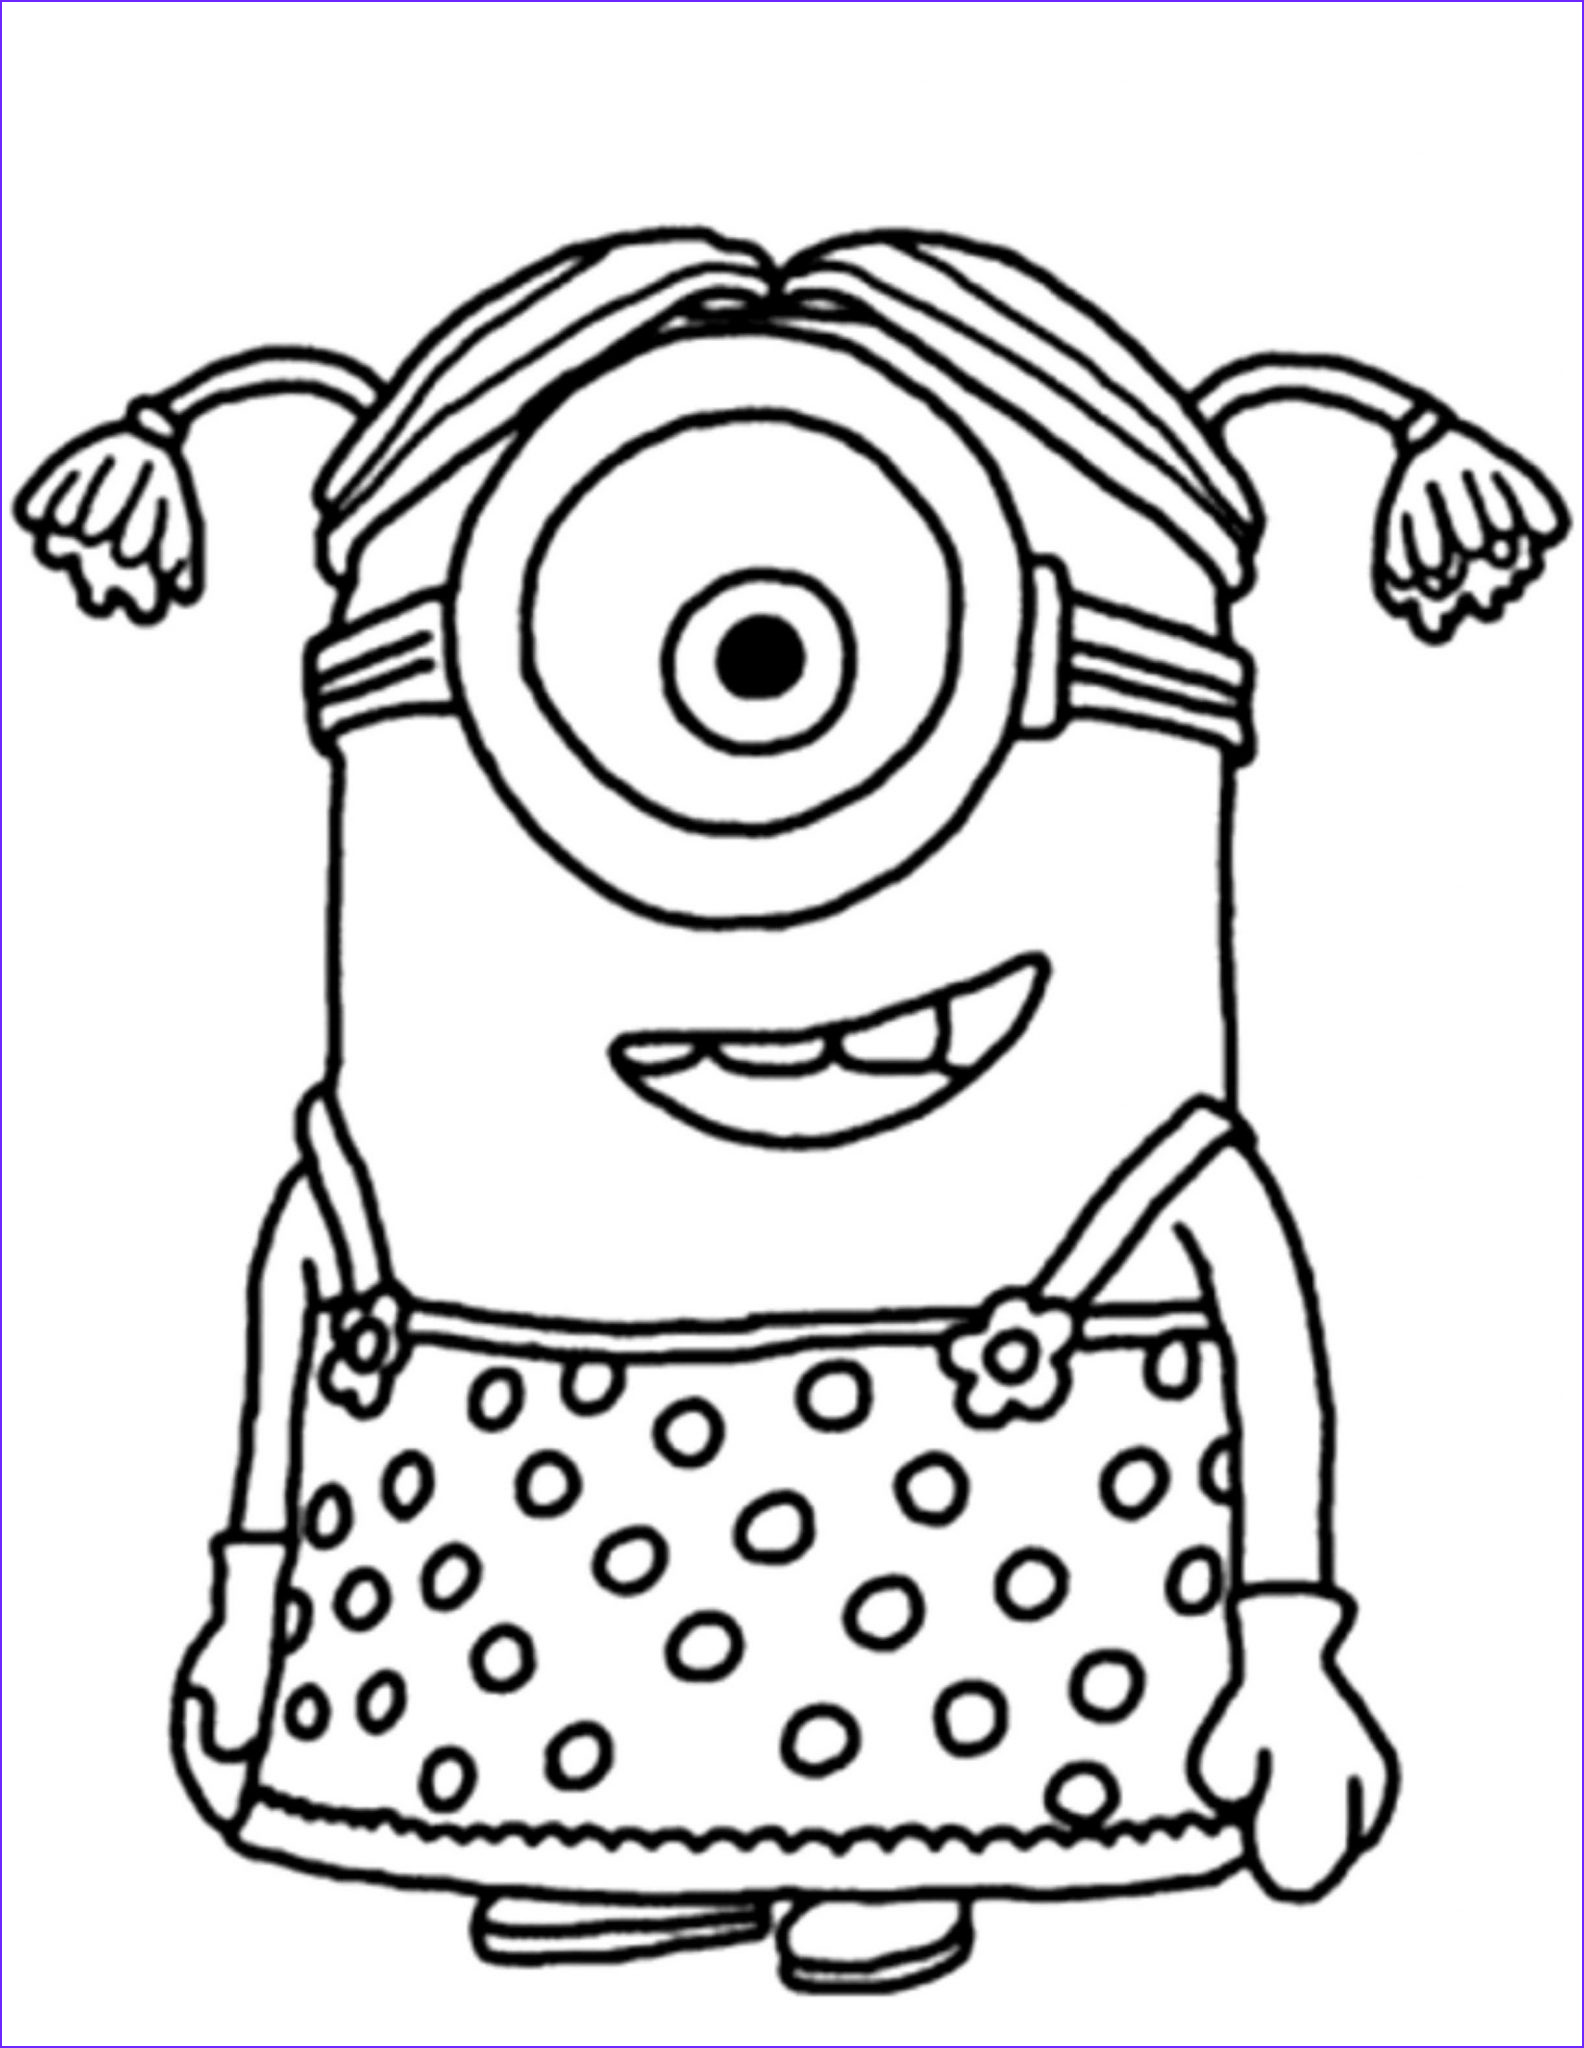 Minion Coloring Page Best Of Collection Print & Download Minion Coloring Pages for Kids to Have